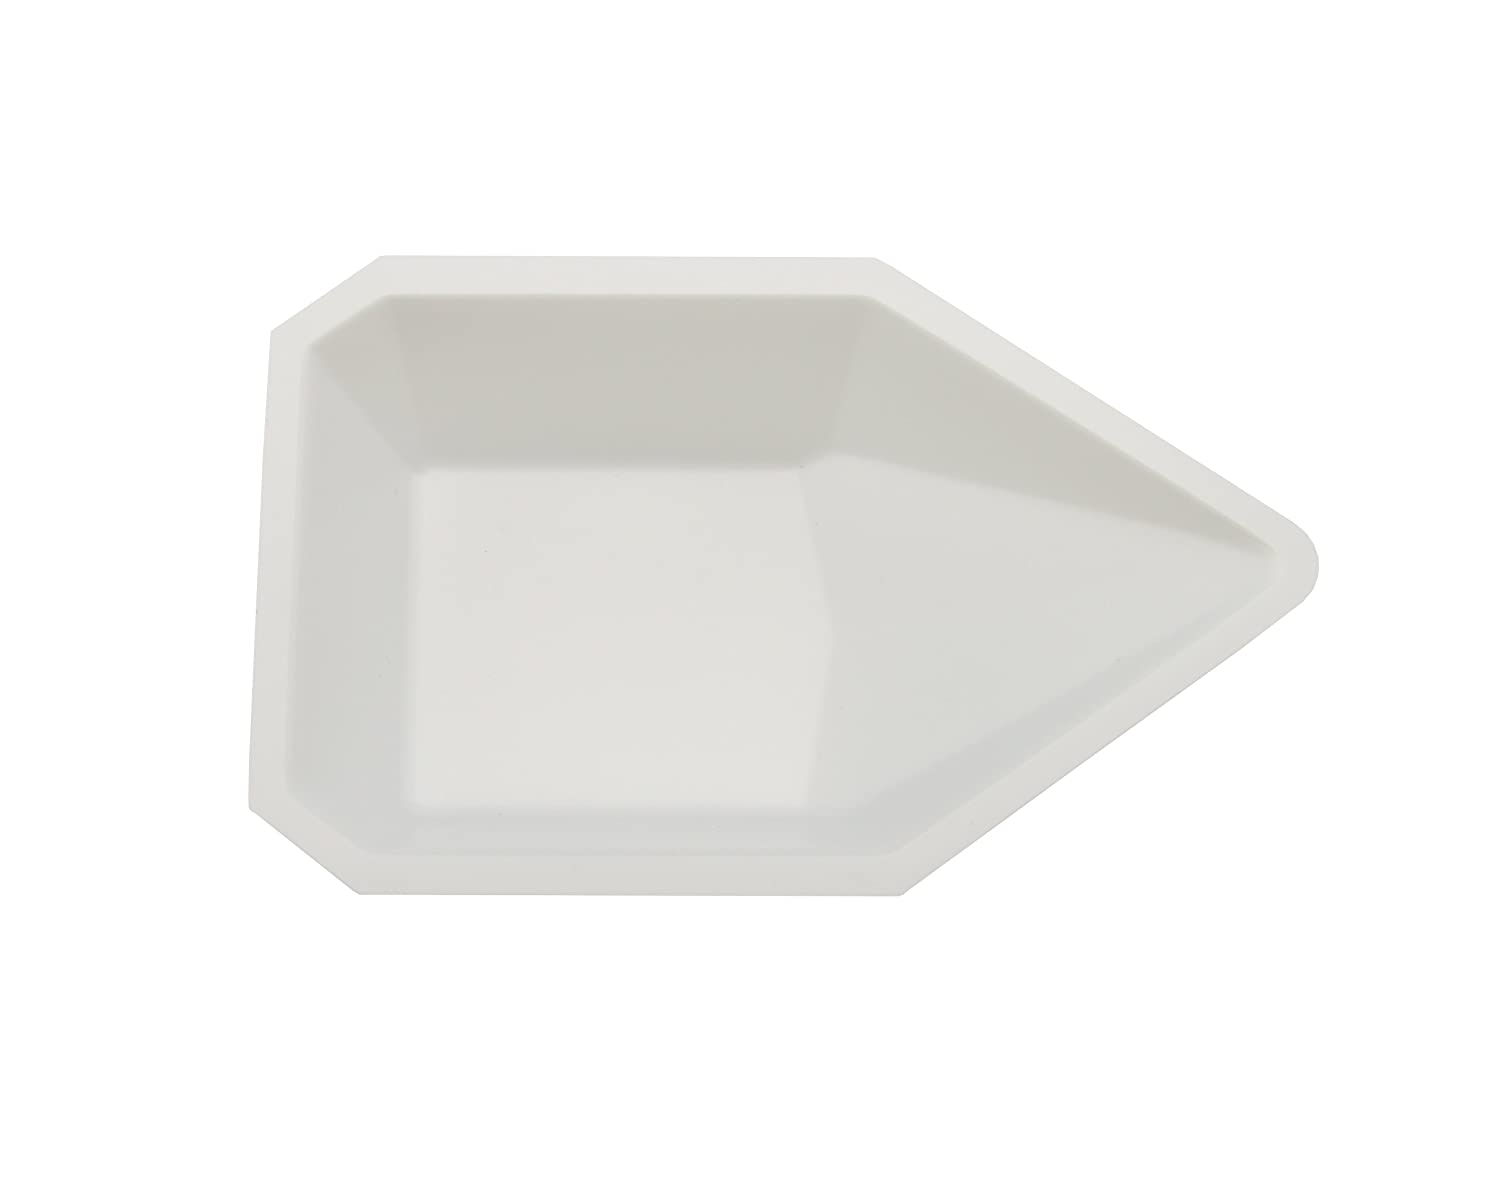 Heathrow Scientific HD1419B Pour Boat, Polystyrene, 83 mm Length x 132 mm Width x 26 mm Depth, White (Pack of 500) HS1419B